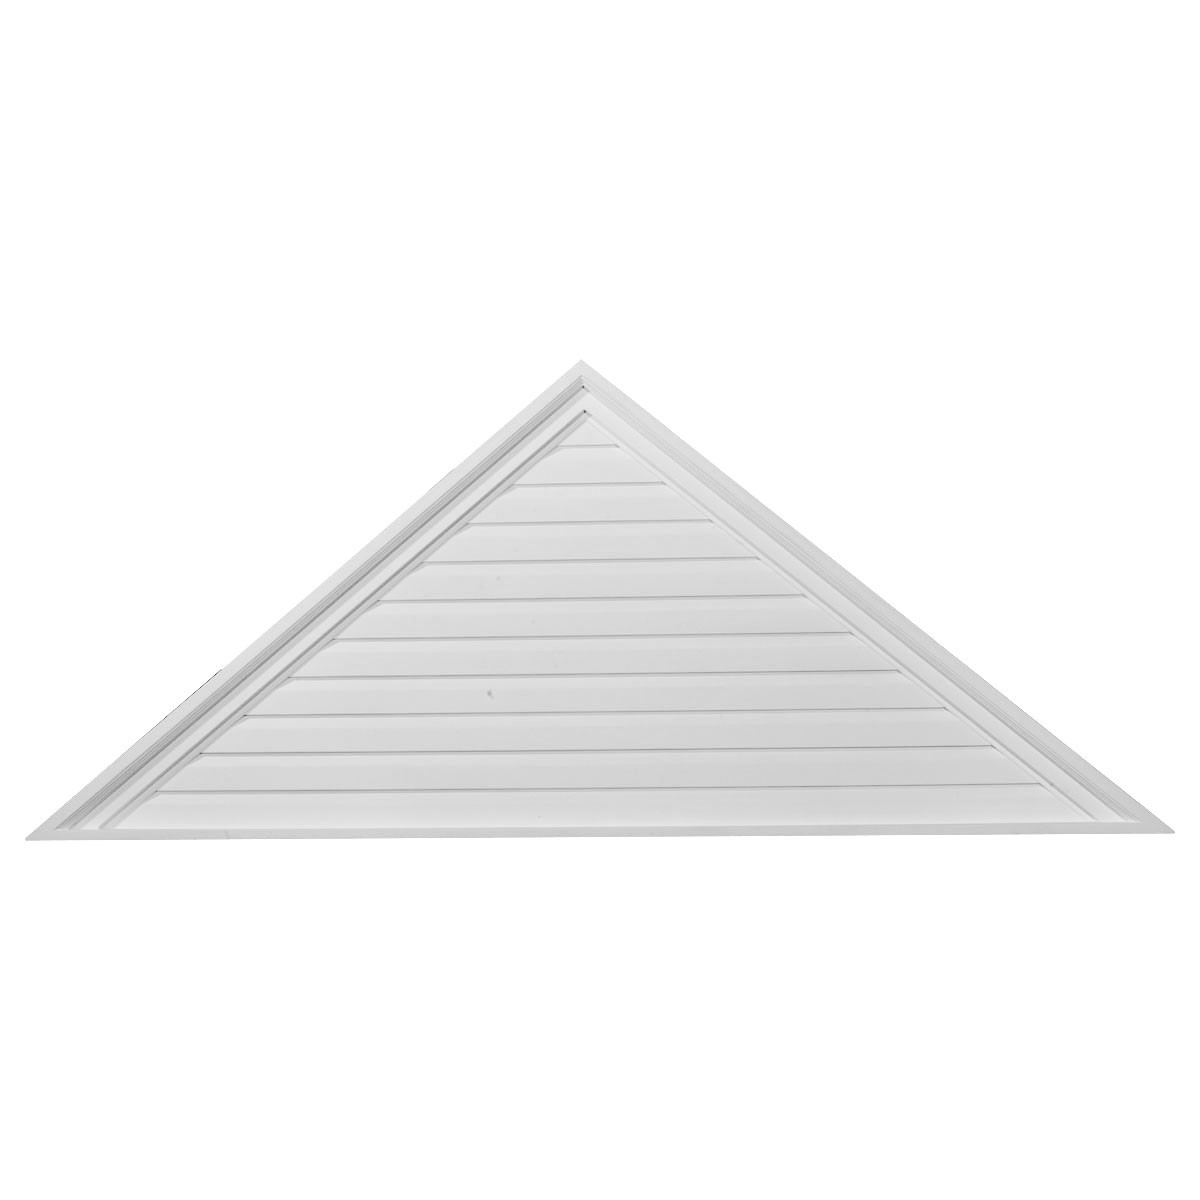 """EM-GVTR48X20F - 48""""W x 20""""H x 2 1/4""""P,  Pitch 10/12 Triangle Gable Vent, Functional"""